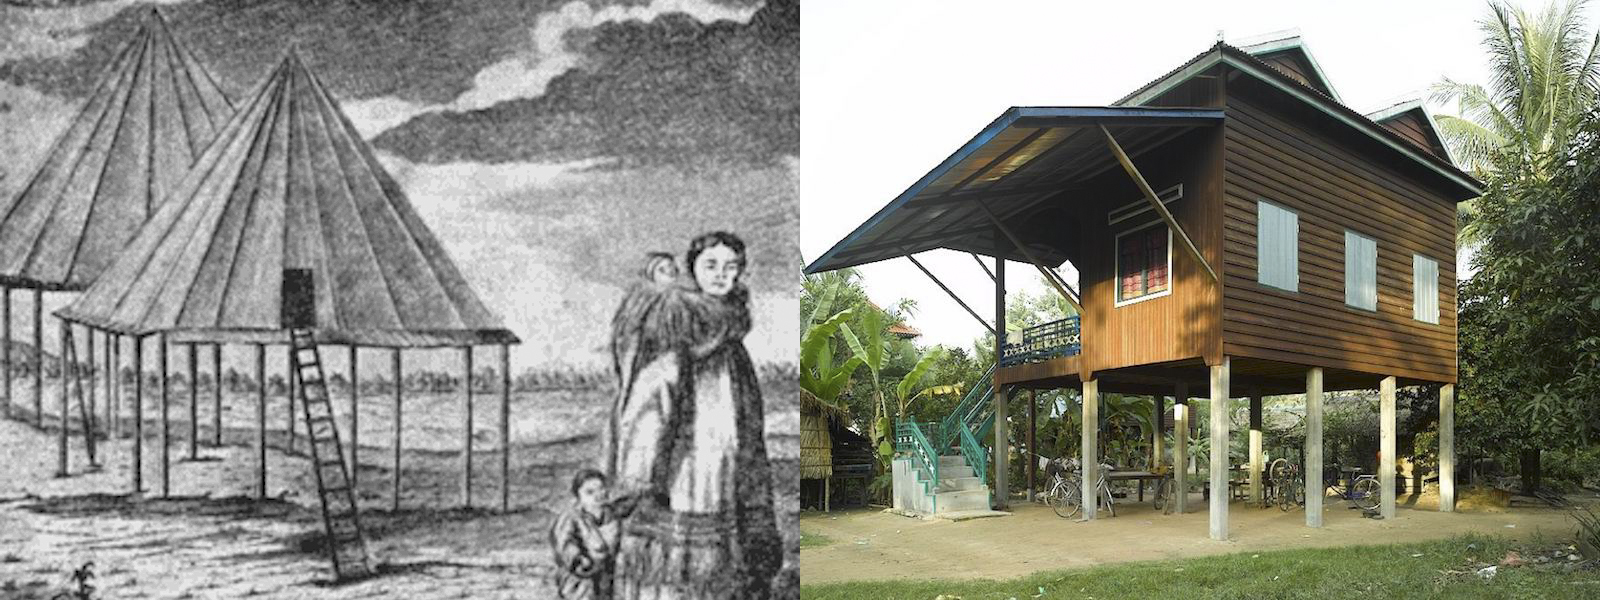 <p>Fig. 6. <em>From left to right</em>: Summer homes of indigenous Kamchatka Peninsula people. A modern stilt house in cambodia.</p>